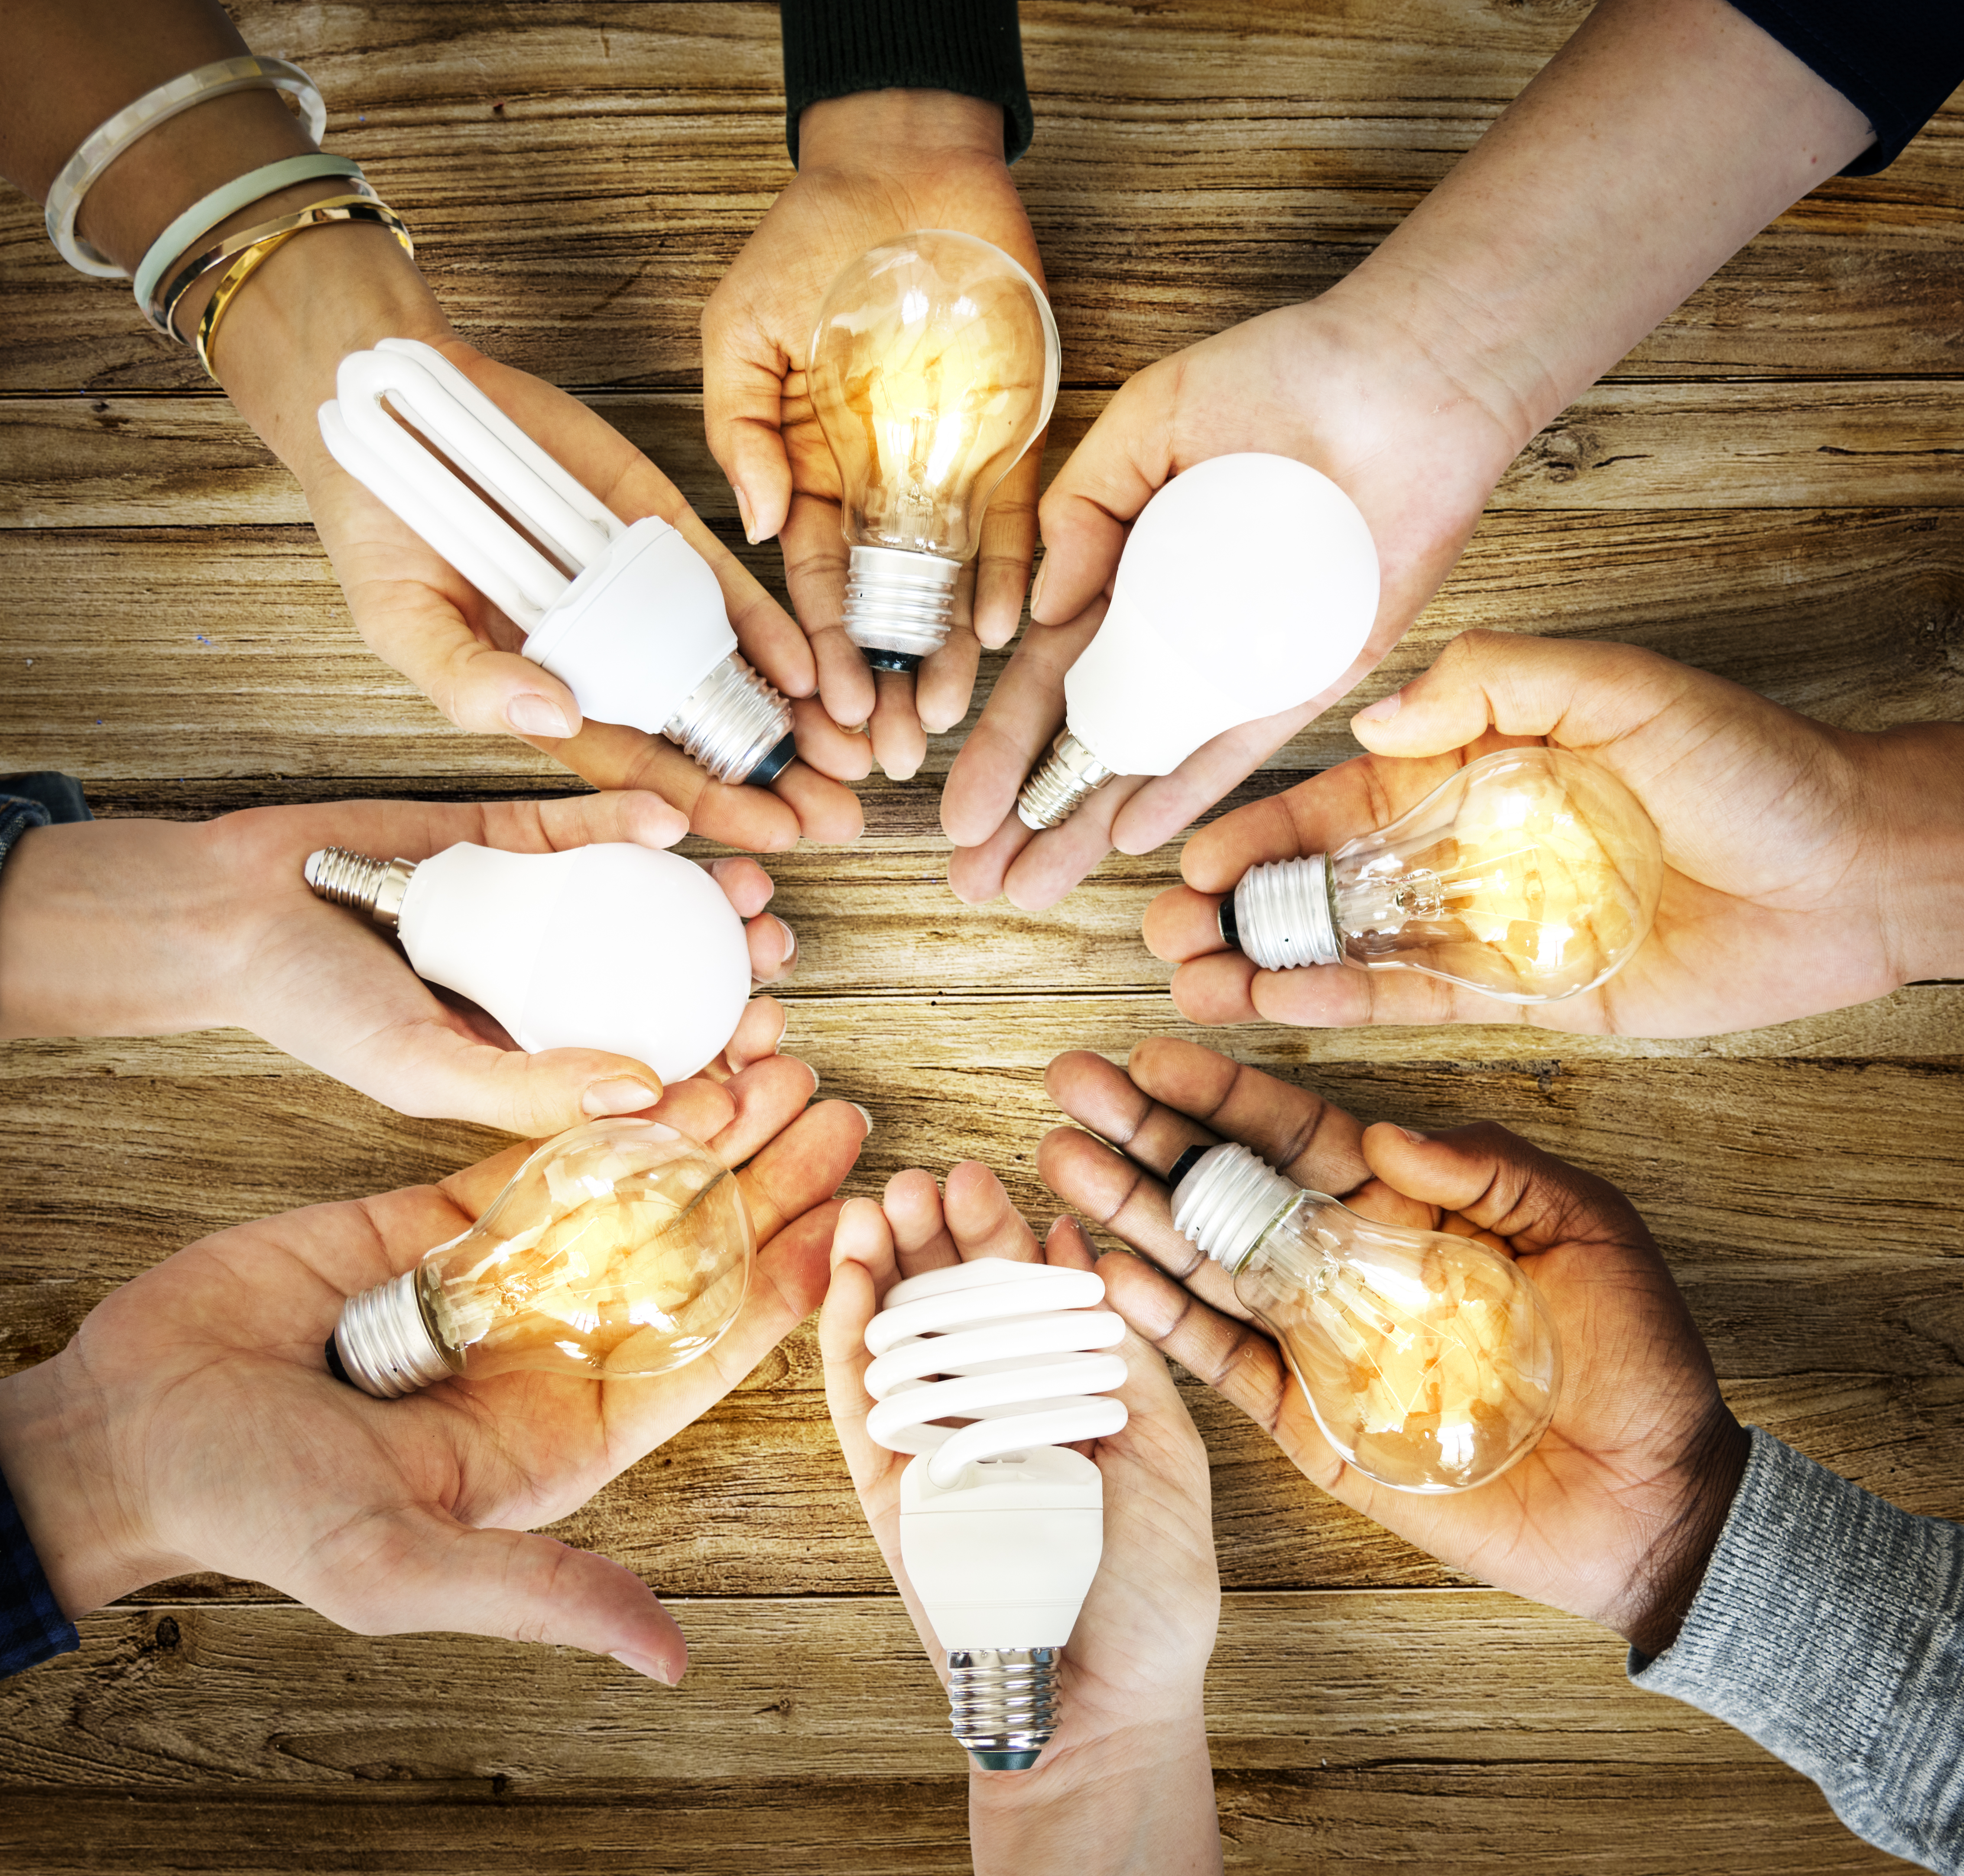 Lightbulb-idea-sharing-(1).jpg